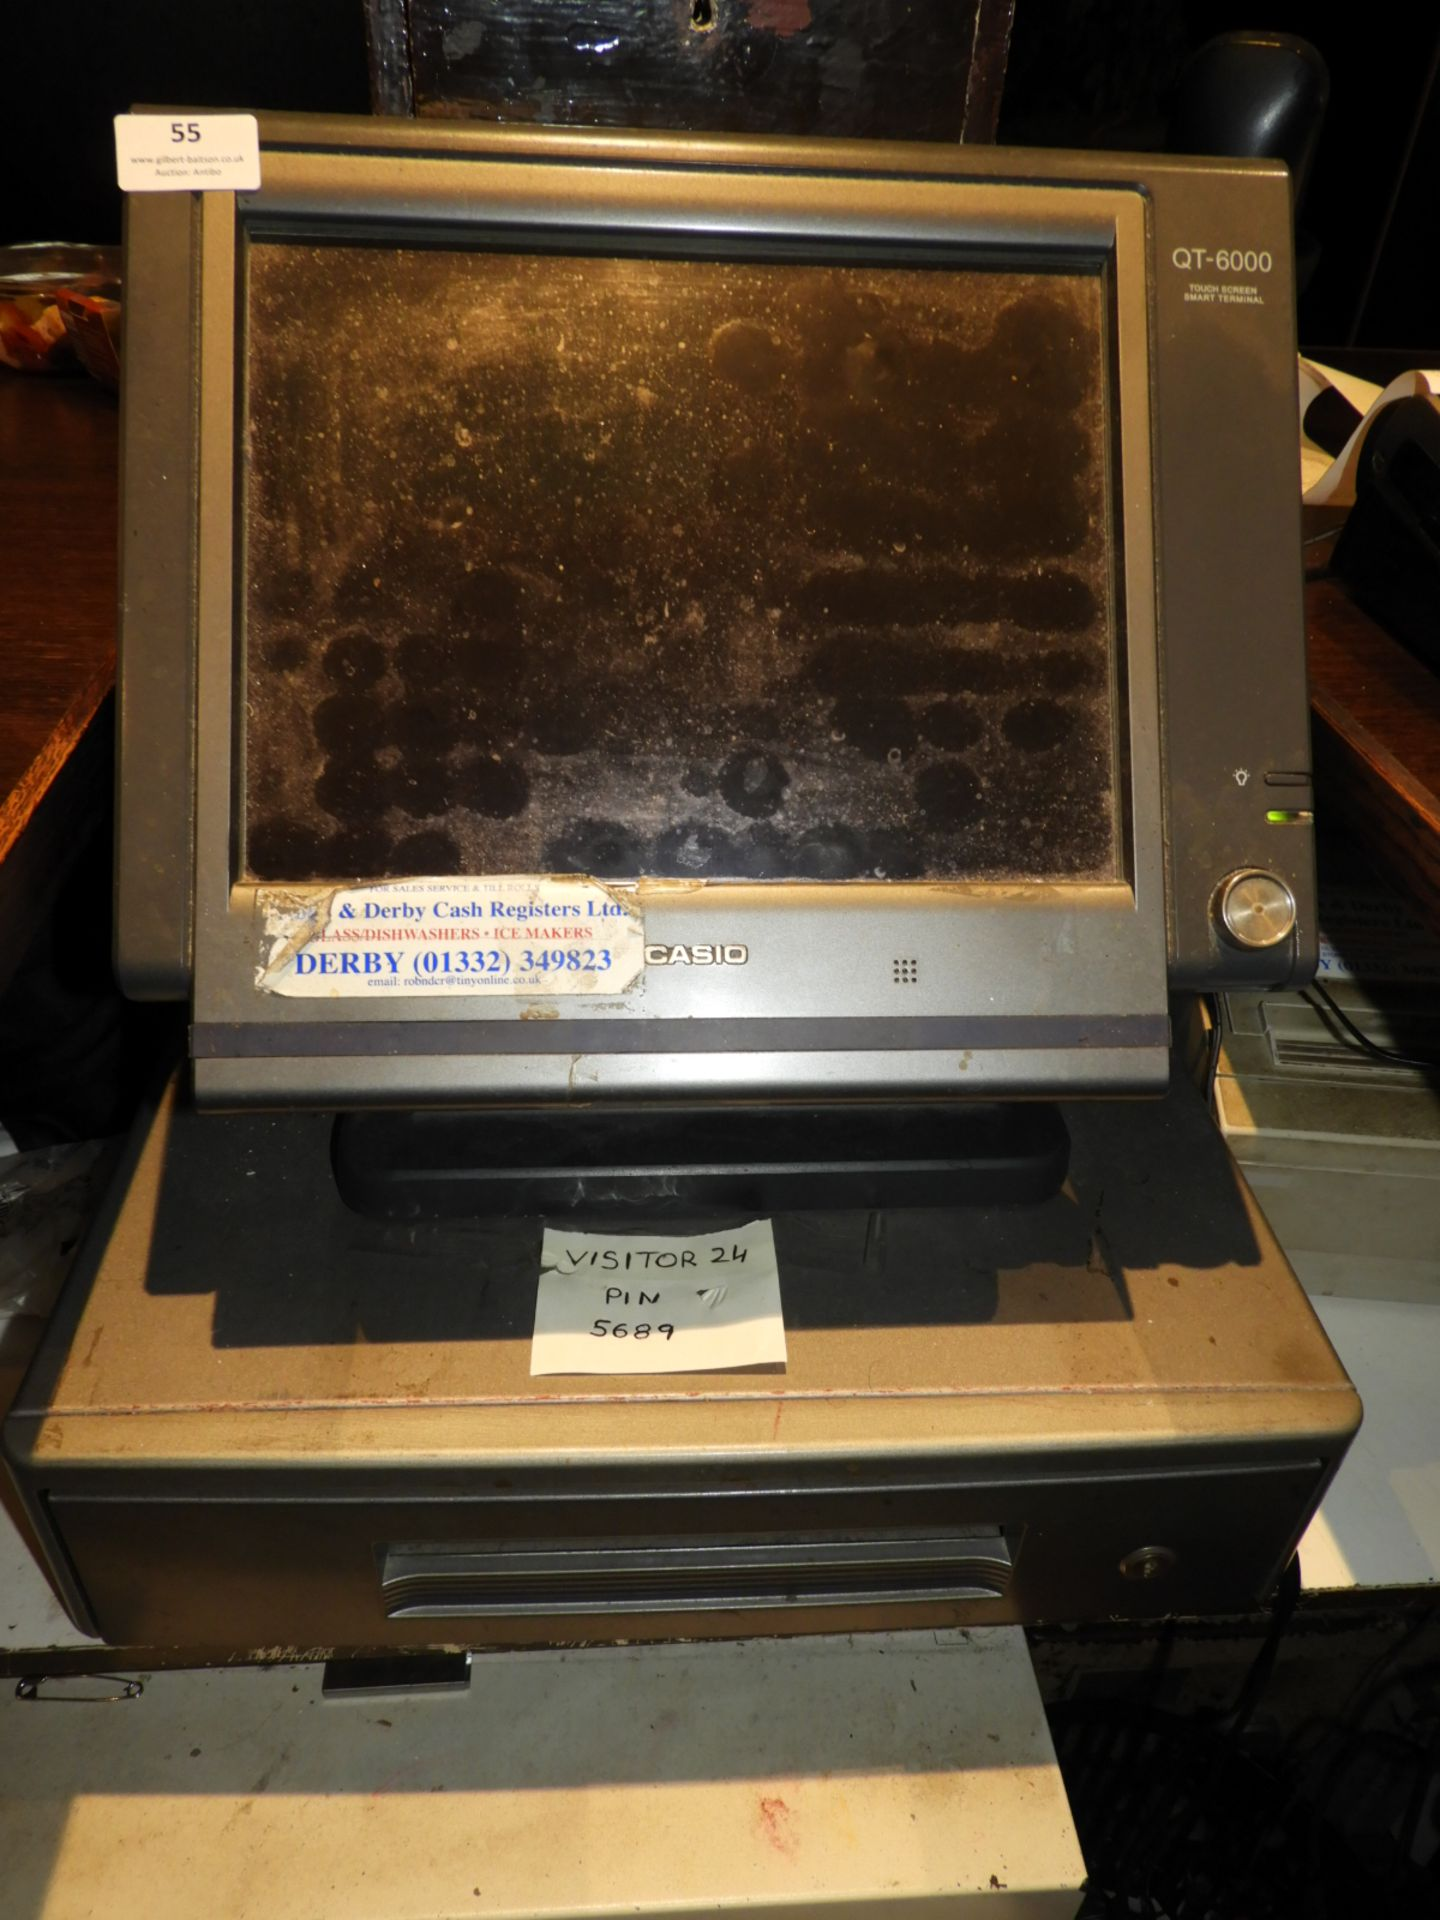 Lot 55 - *Casio QT600 Touchscreen Till with Thermal Printer